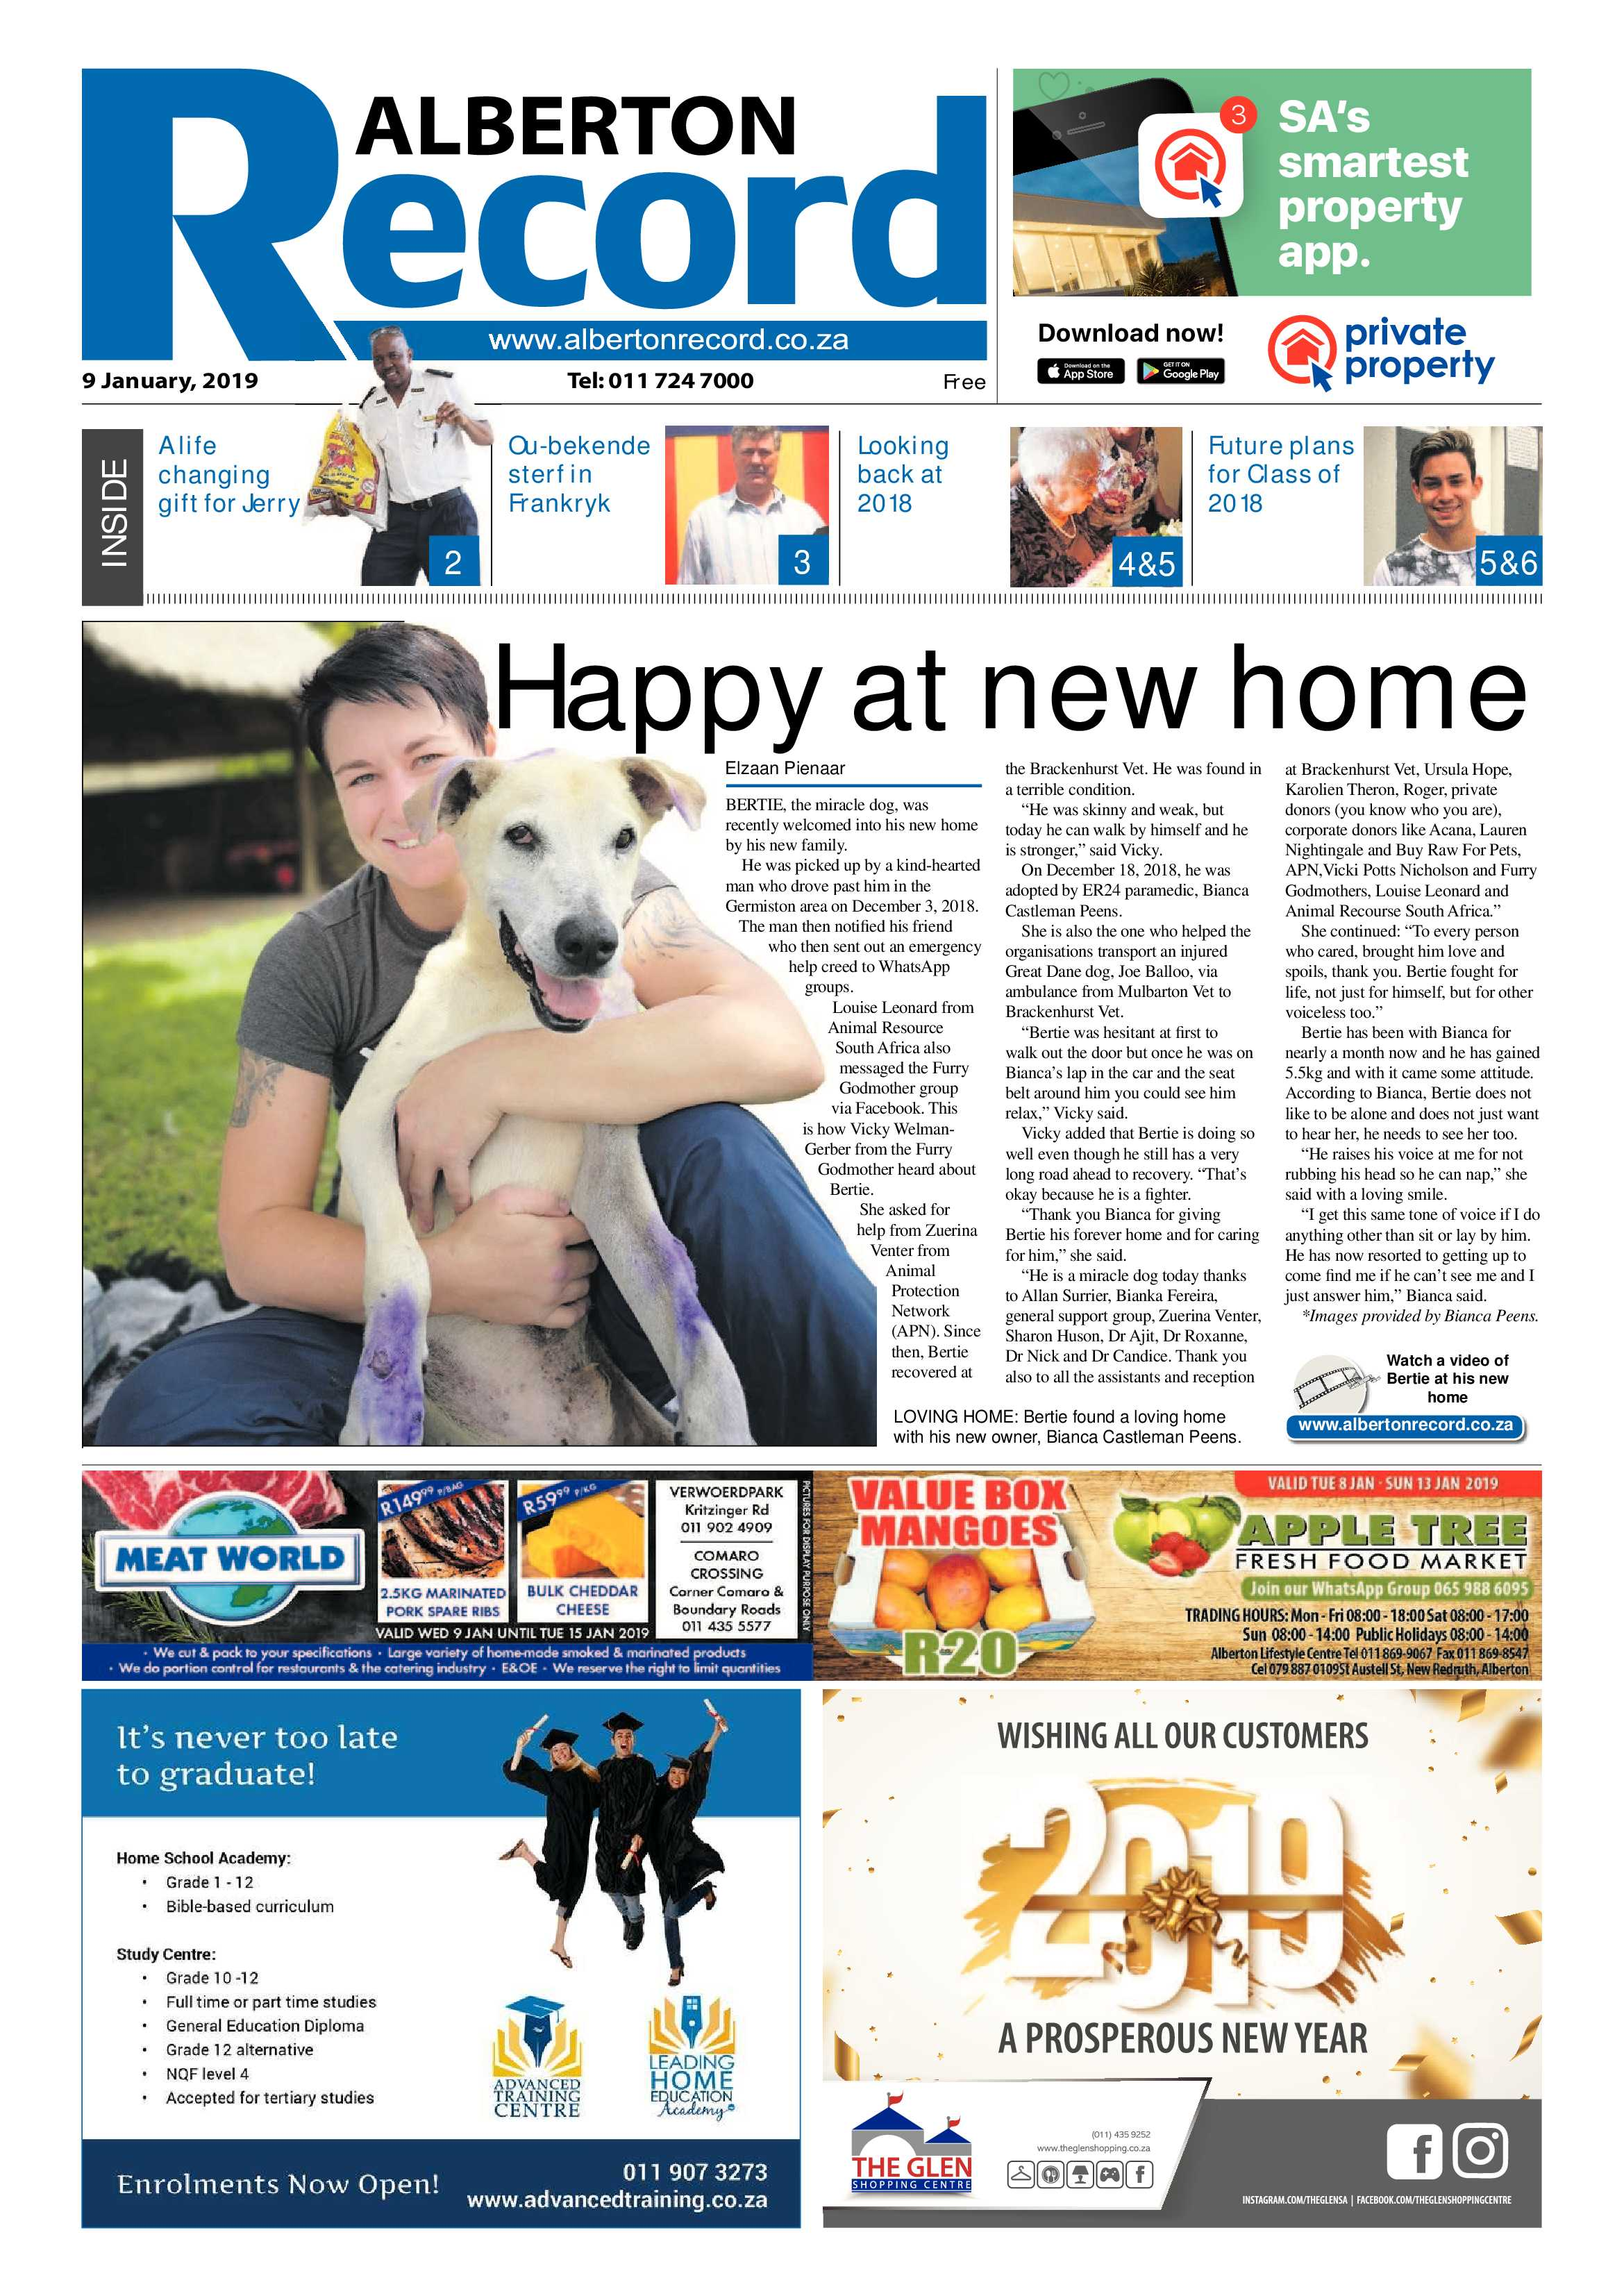 alberton-record-09-january-2019-epapers-page-1